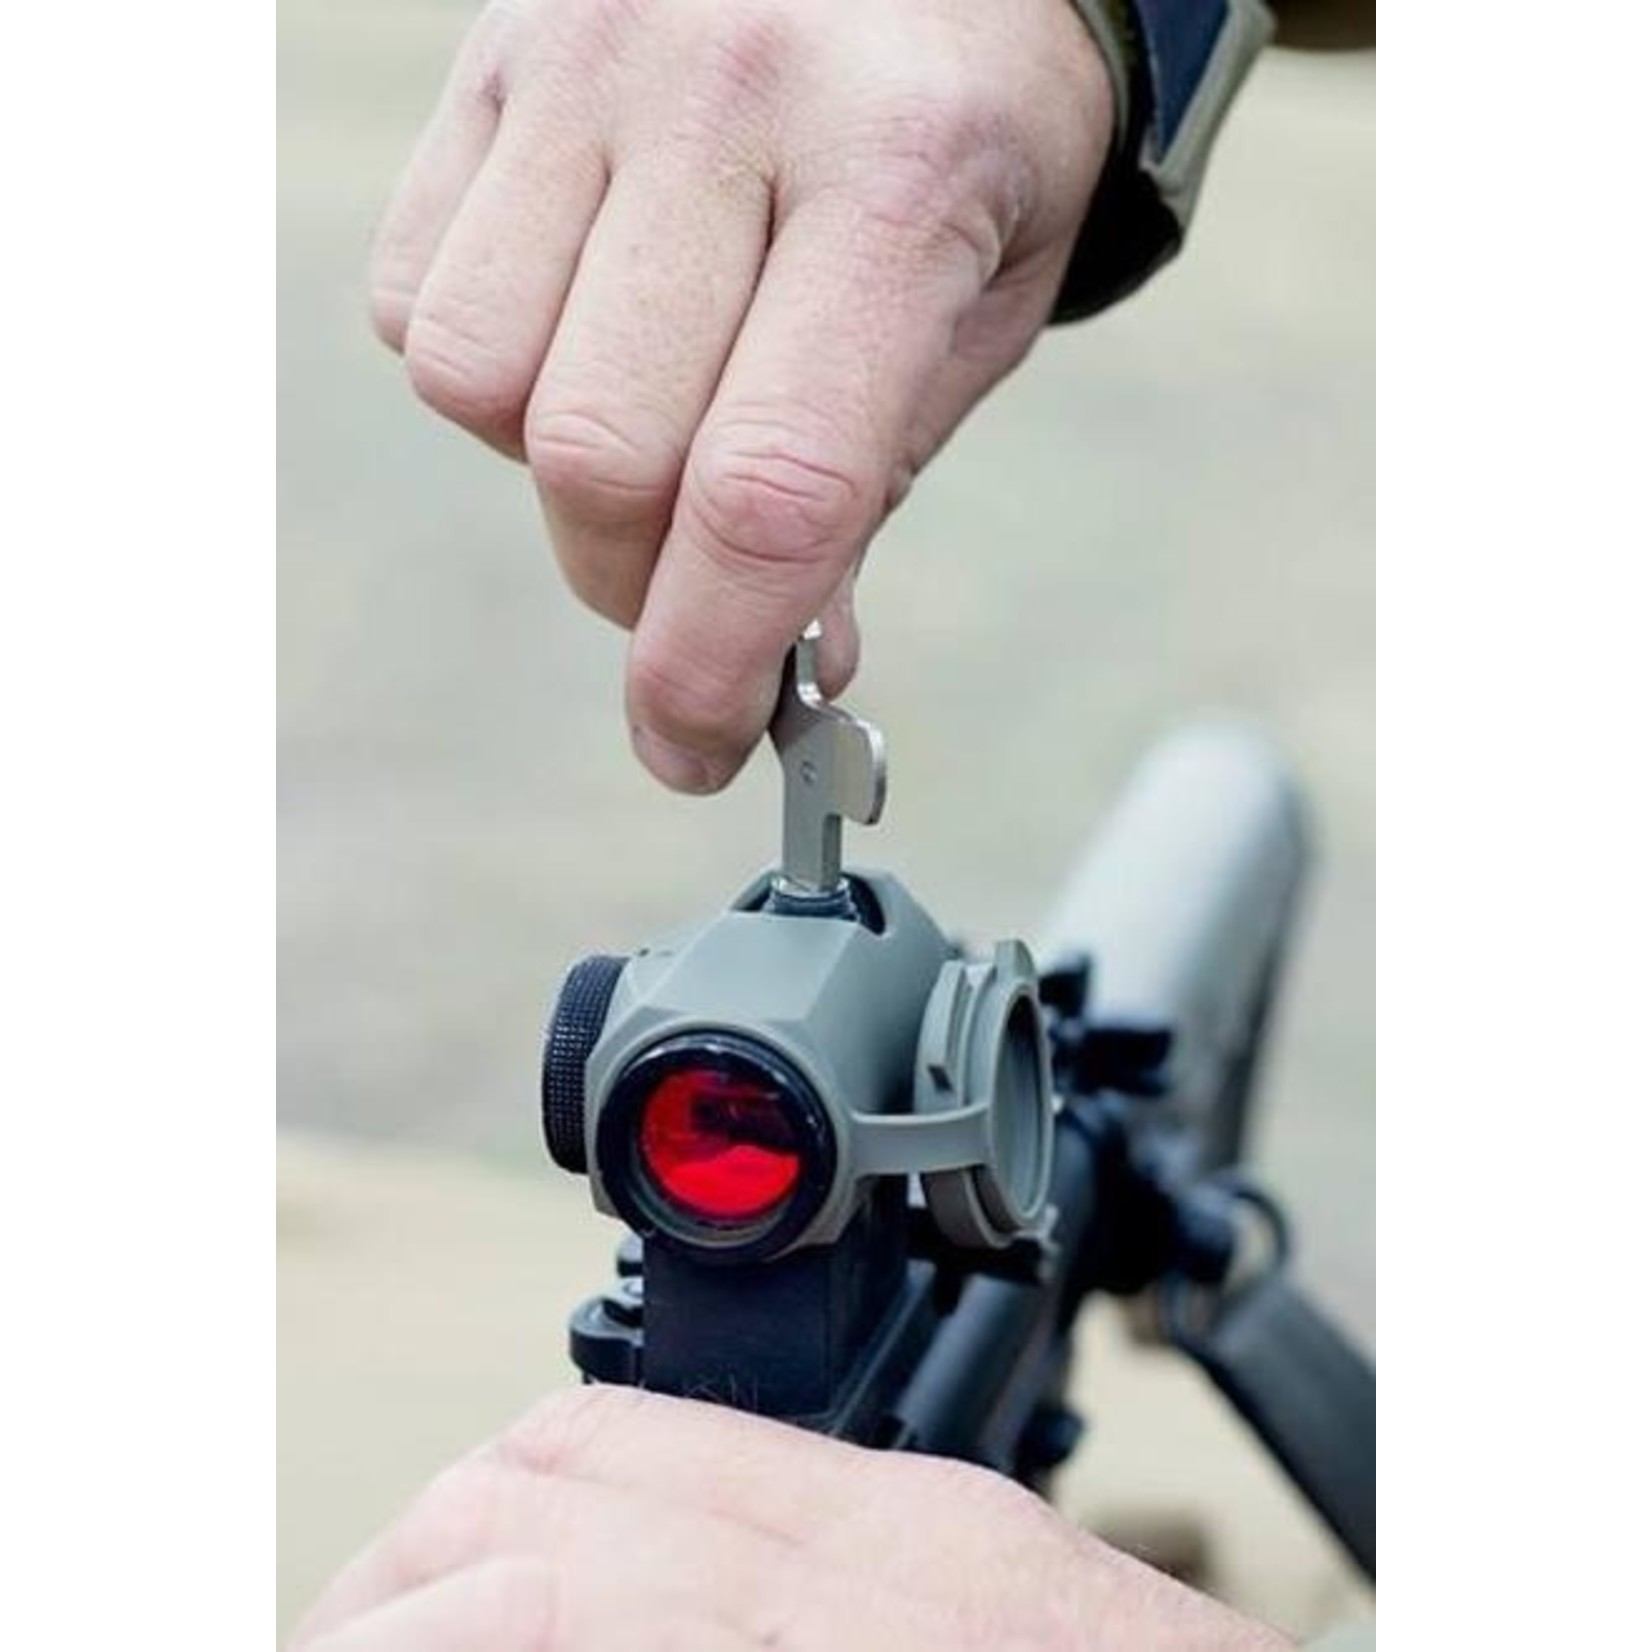 PATRIOT PRODUCTS COMBAT OPTIC TOOL (COT)